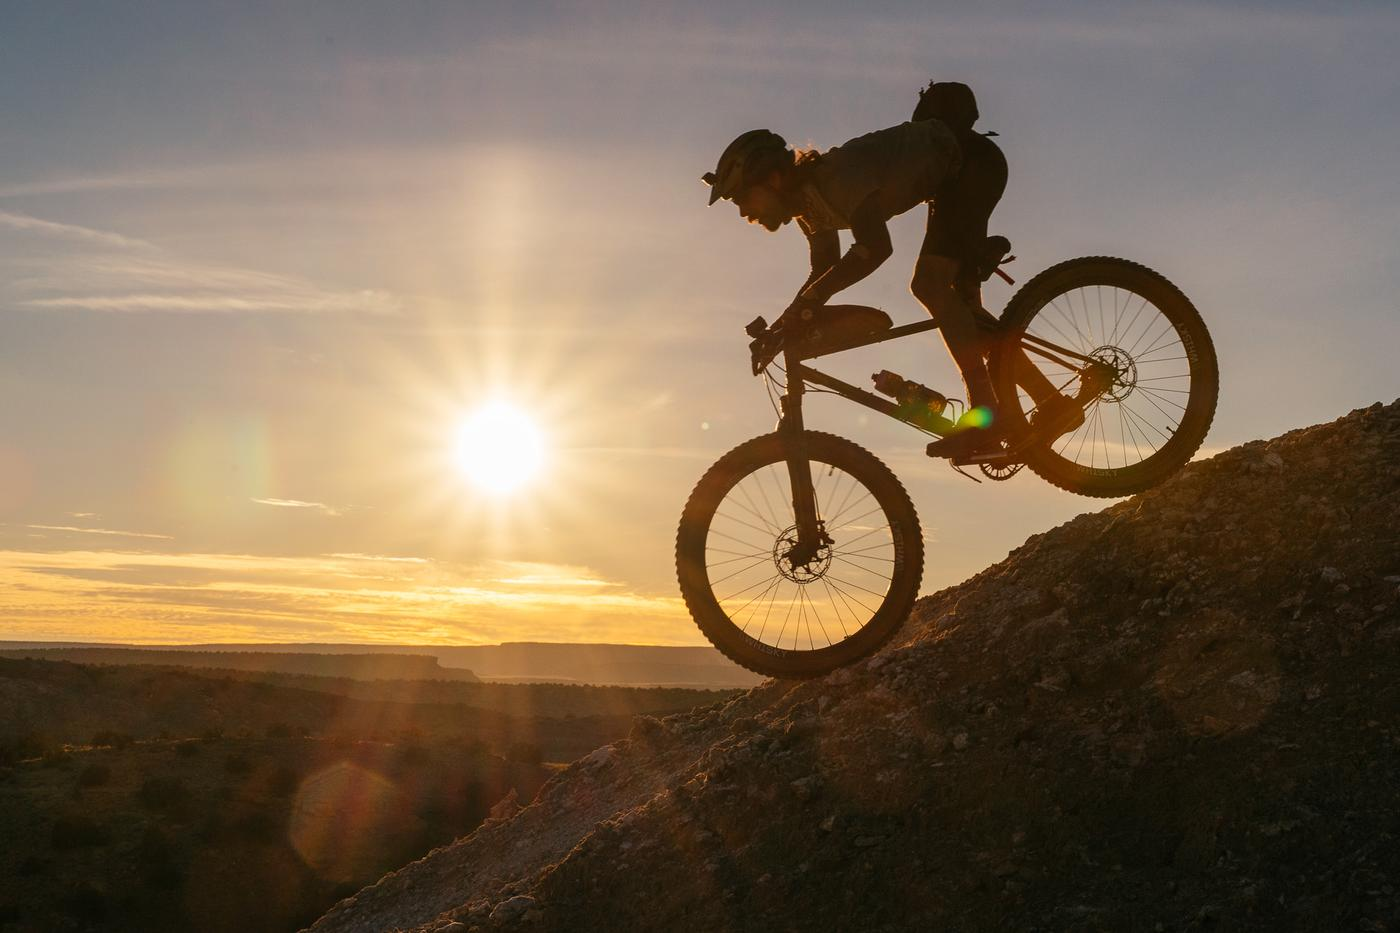 Adventure Cyclist Magazine is Seeking an Editor-in-Chief